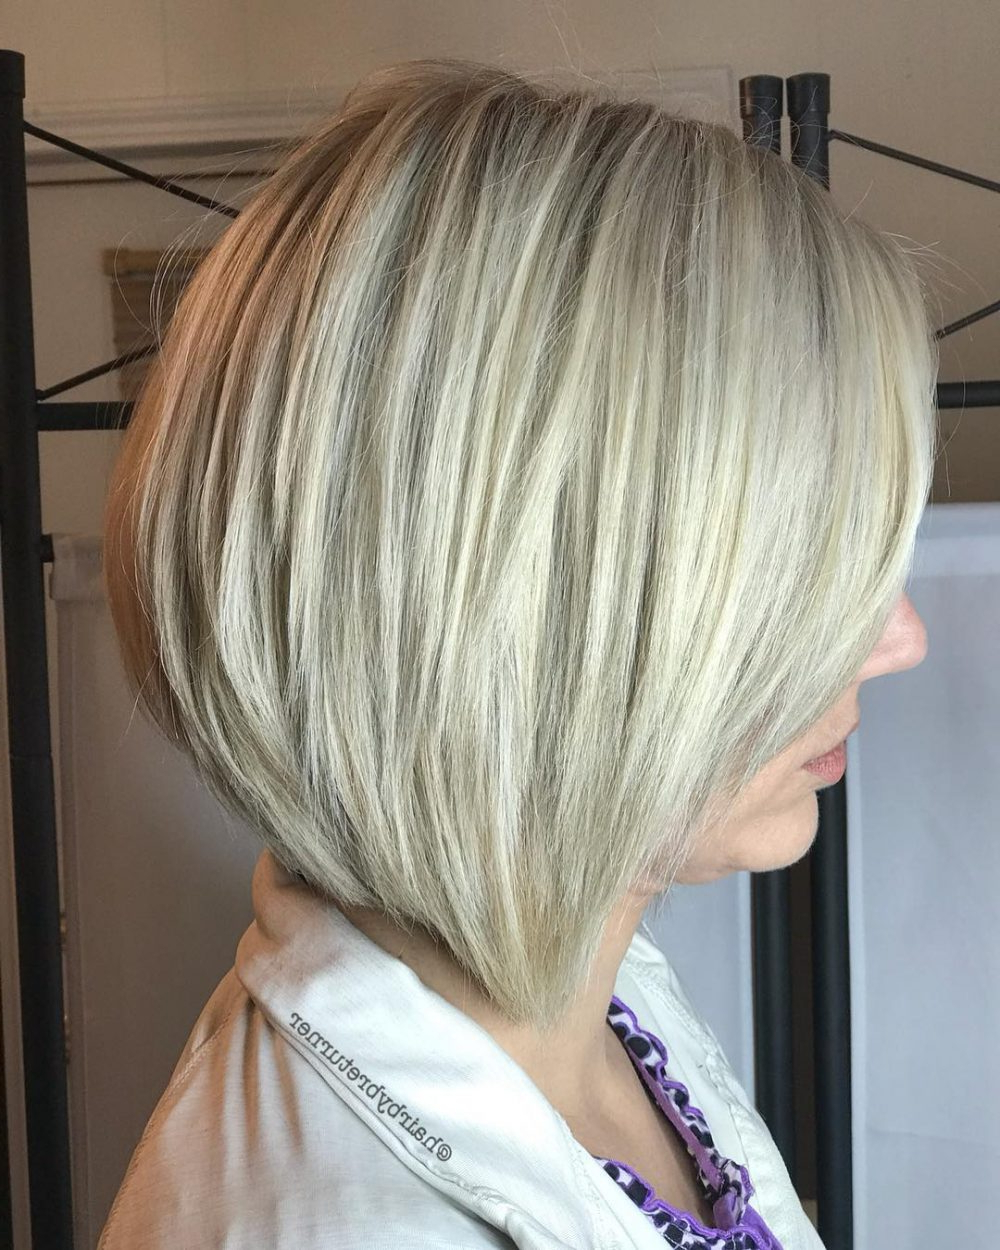 42 Sexiest Short Hairstyles For Women Over 40 In 2019 With Regard To 2017 Asymmetrical Medium Haircuts For Women (View 5 of 20)